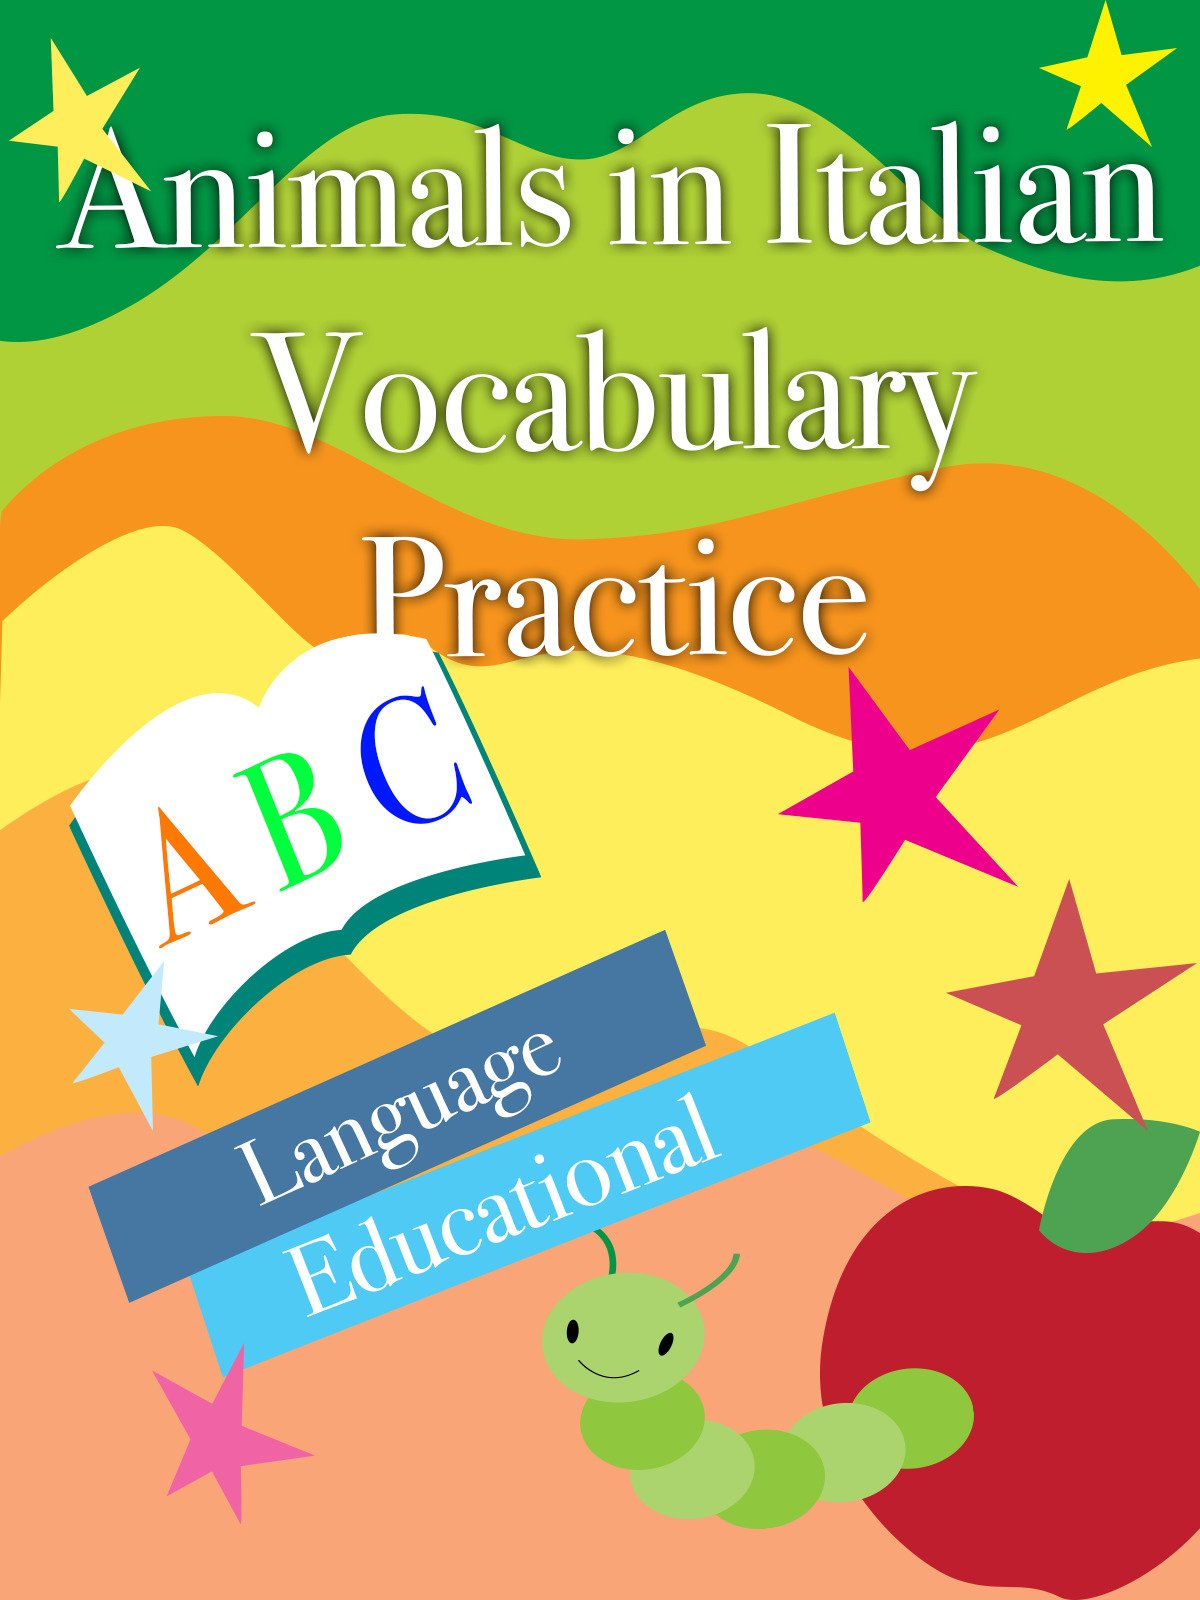 Animals in Italian Vocabulary Practice Language Educational